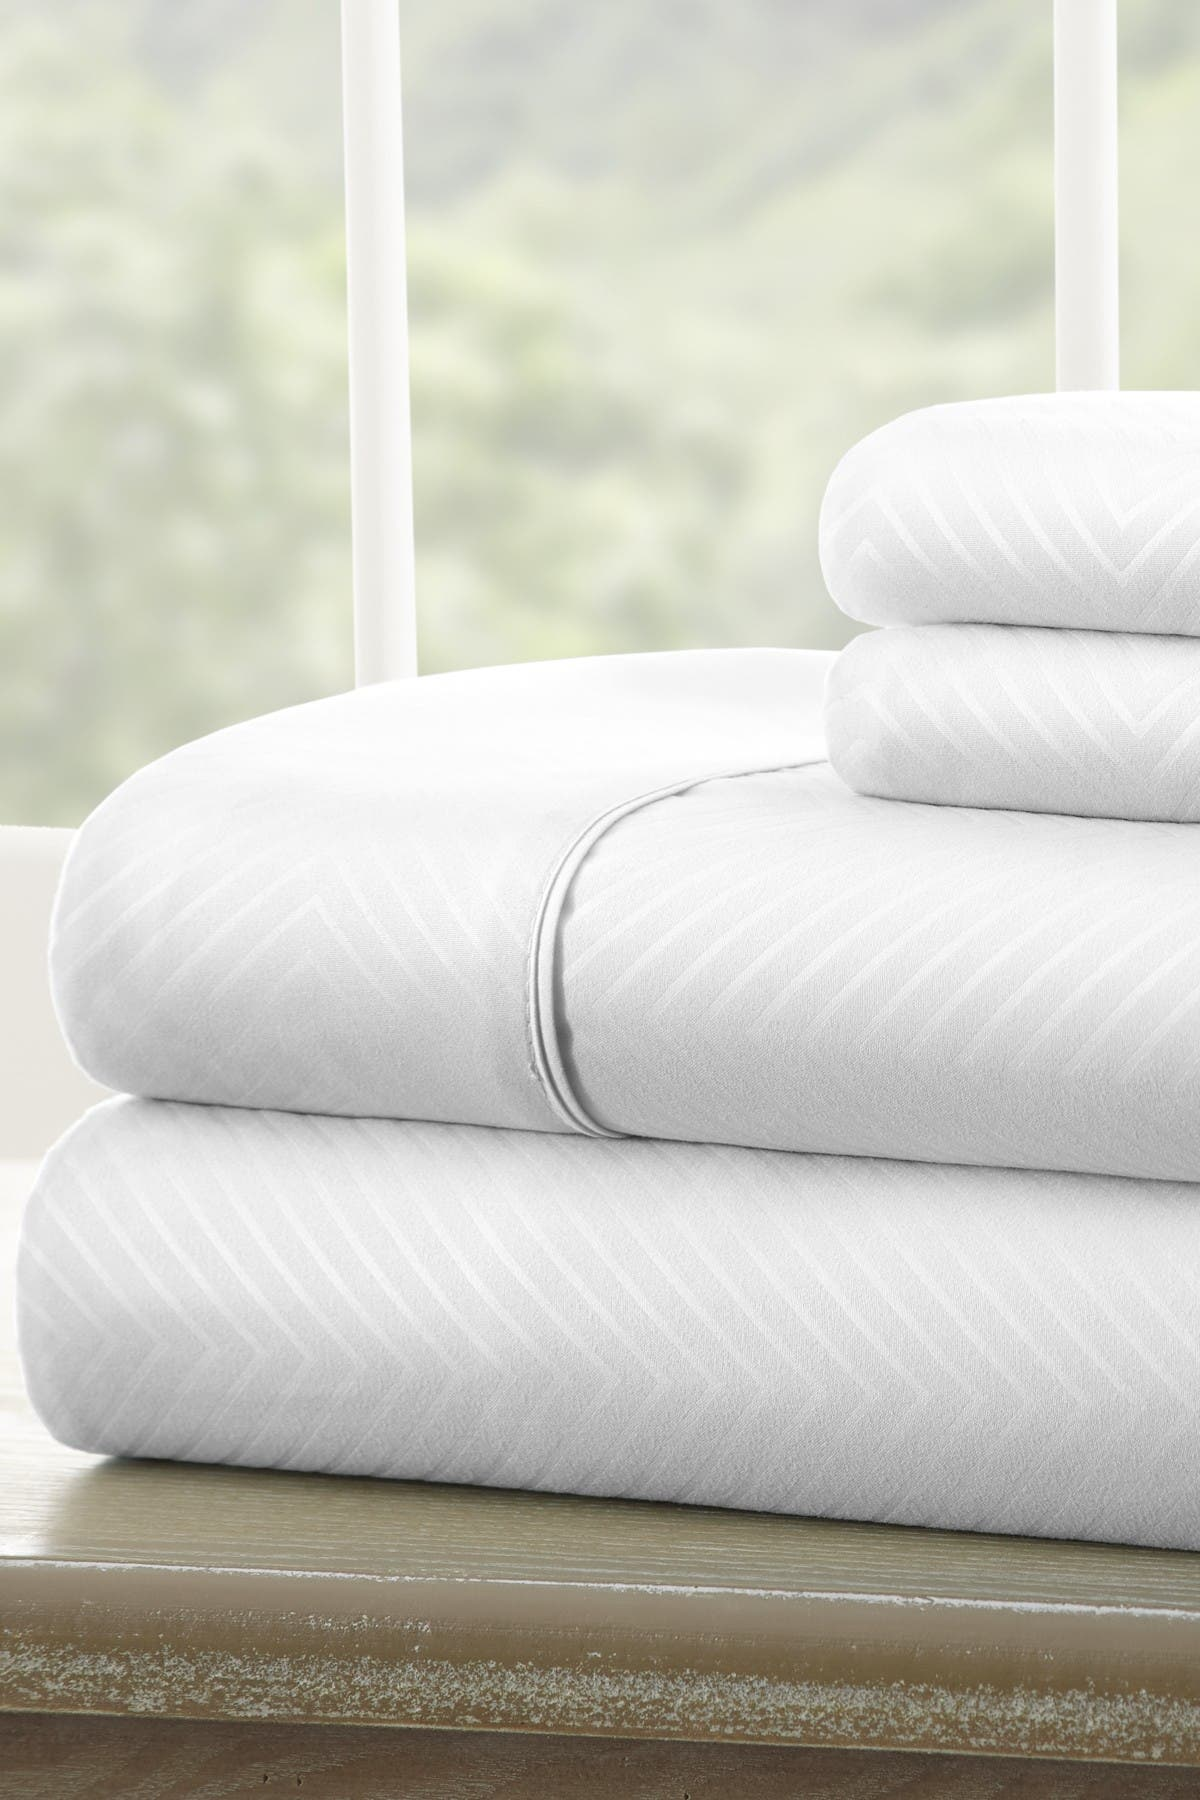 Image of IENJOY HOME California King Hotel Collection Premium Ultra Soft 4-Piece Chevron Bed Sheet Set - White